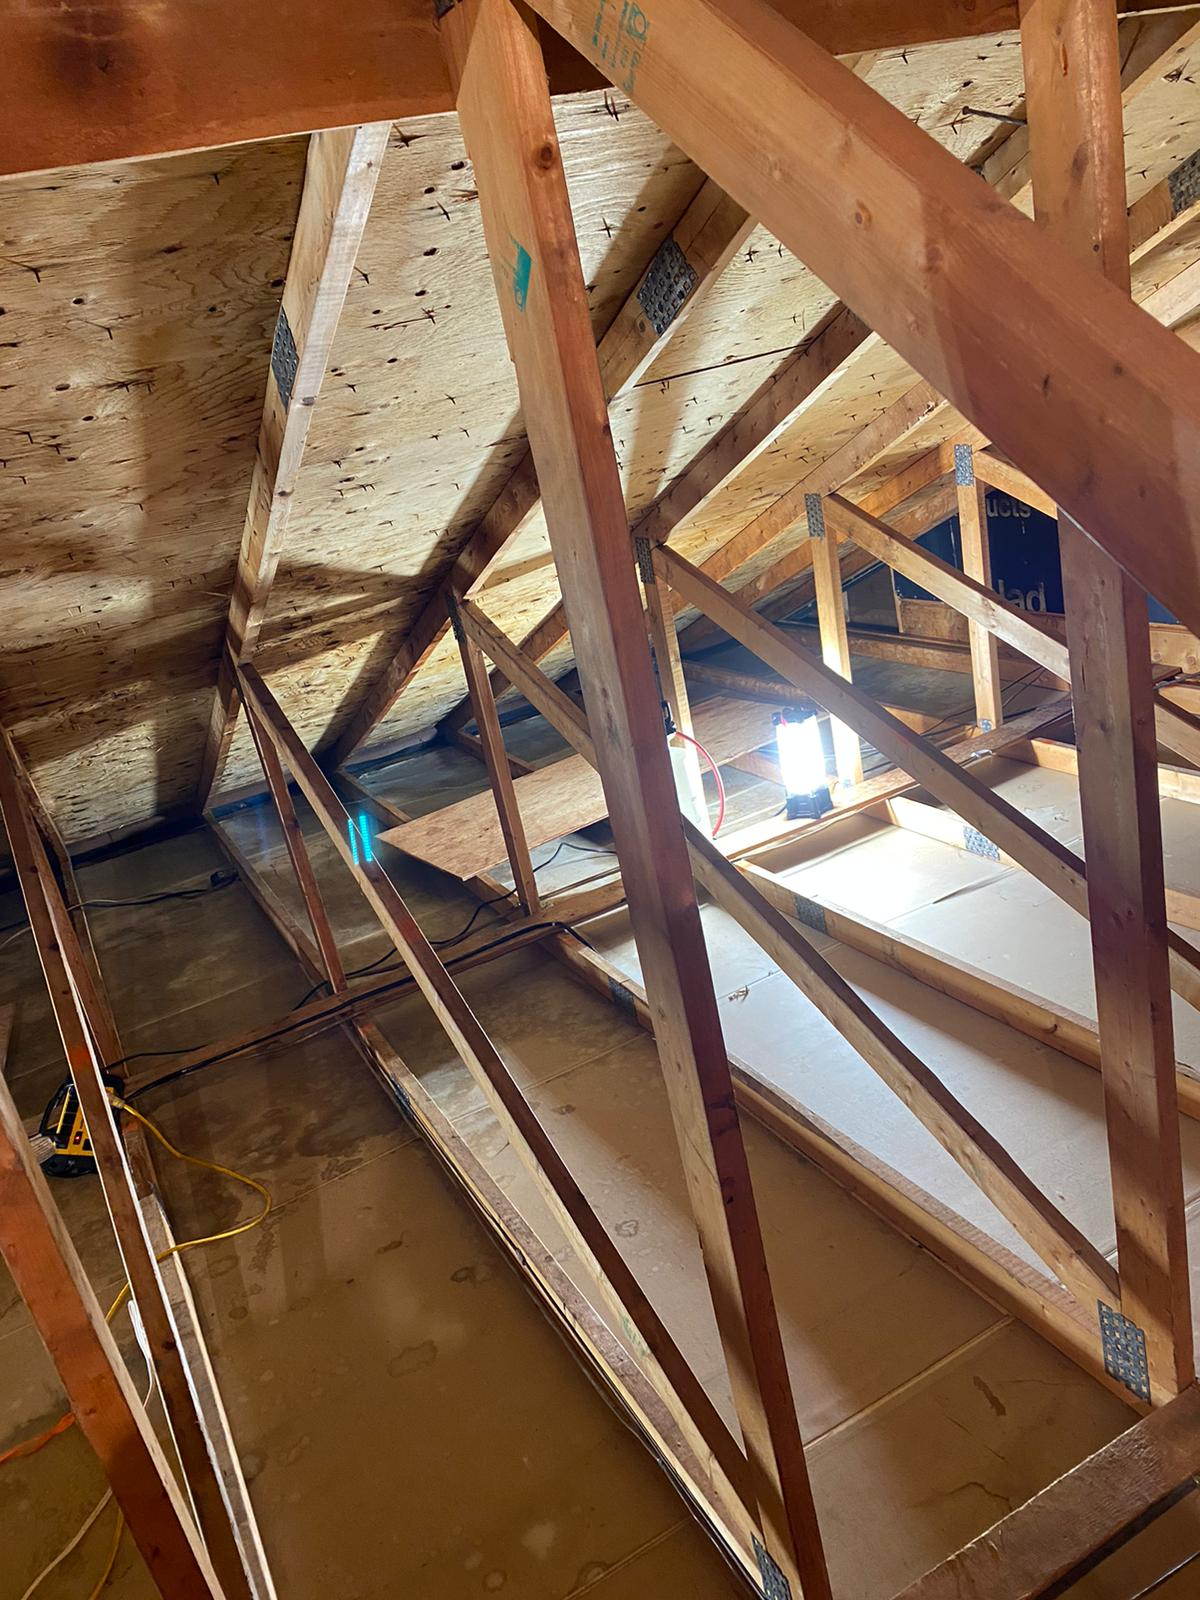 After Removal of asbestos containing vermiculite insulation and treating mold on the udnershide of the roof sheeting.